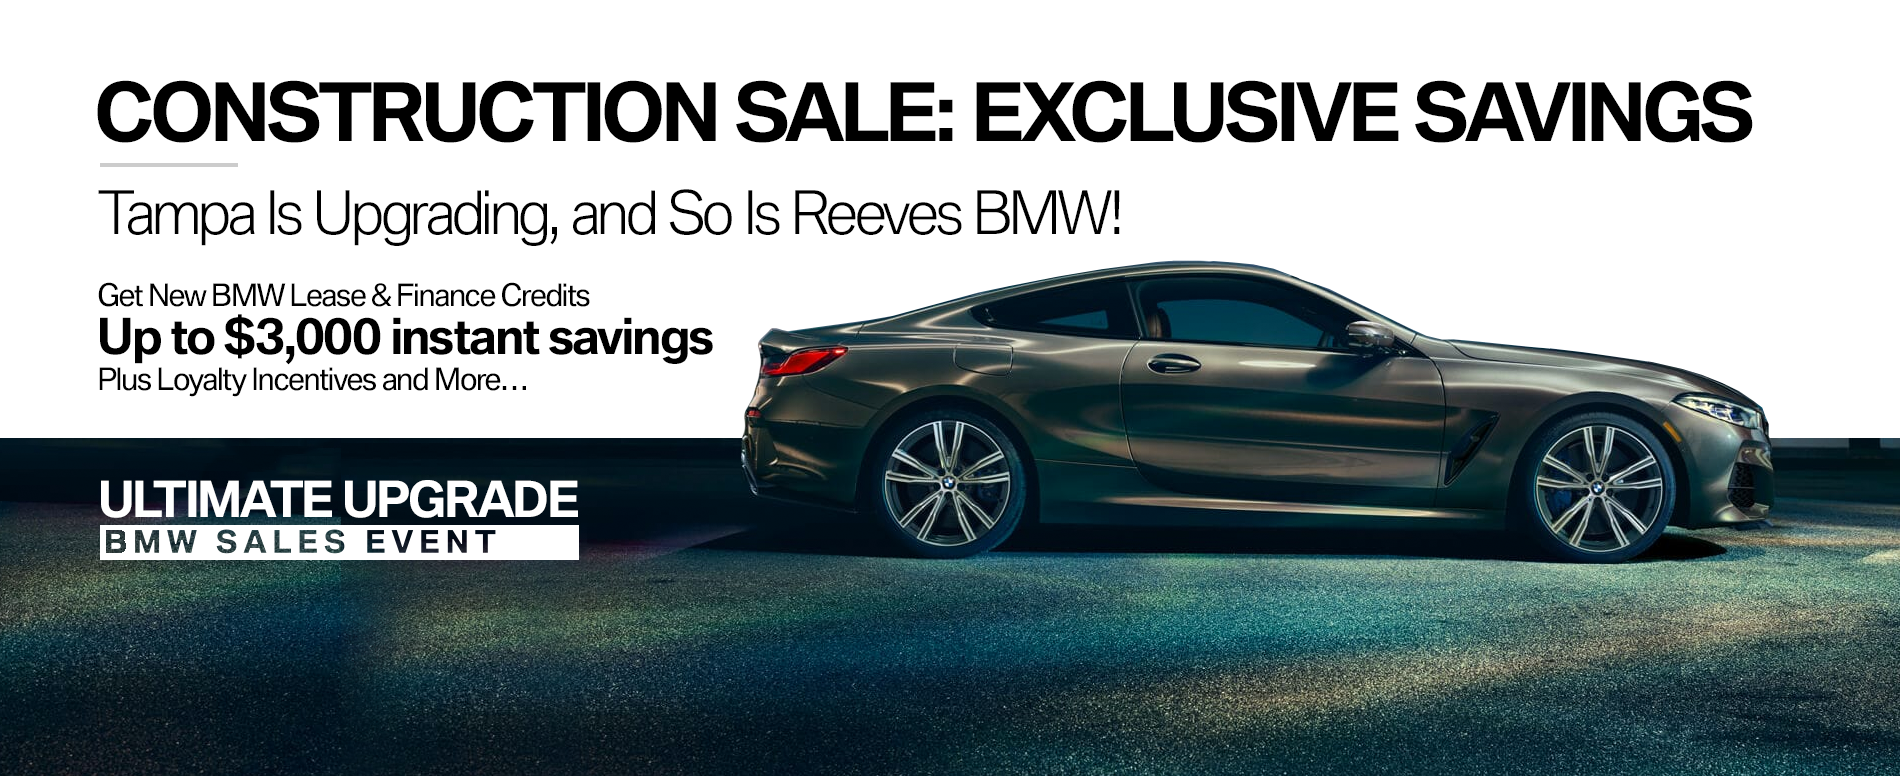 Reeves BMW Upgrade Event